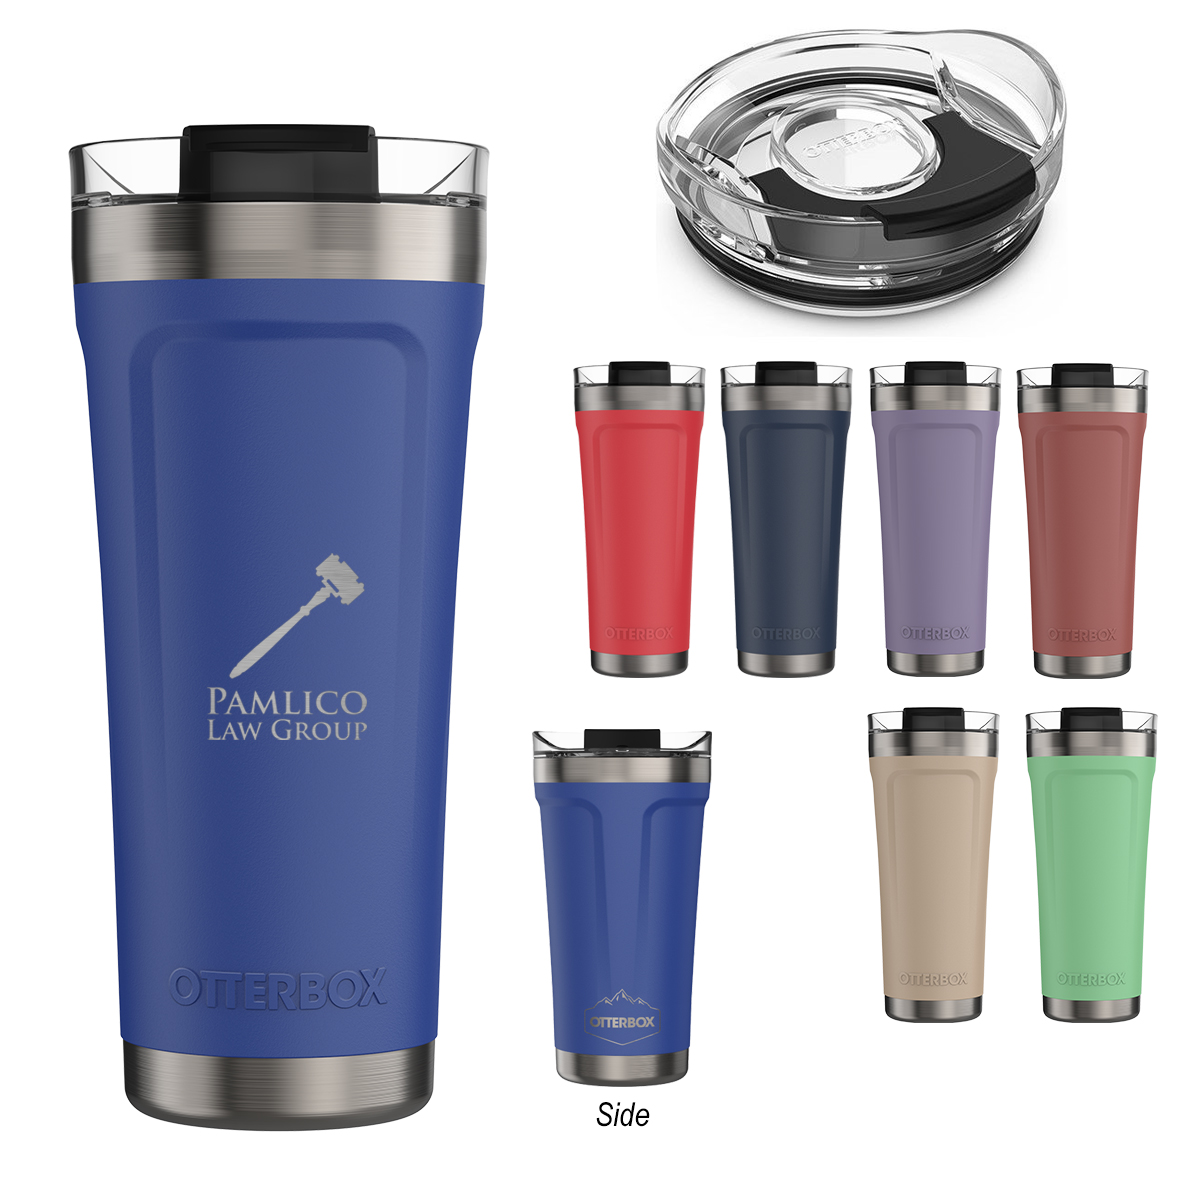 345937940-816 - 20 Oz. Otterbox® Elevation® Stainless Steel Tumbler - thumbnail